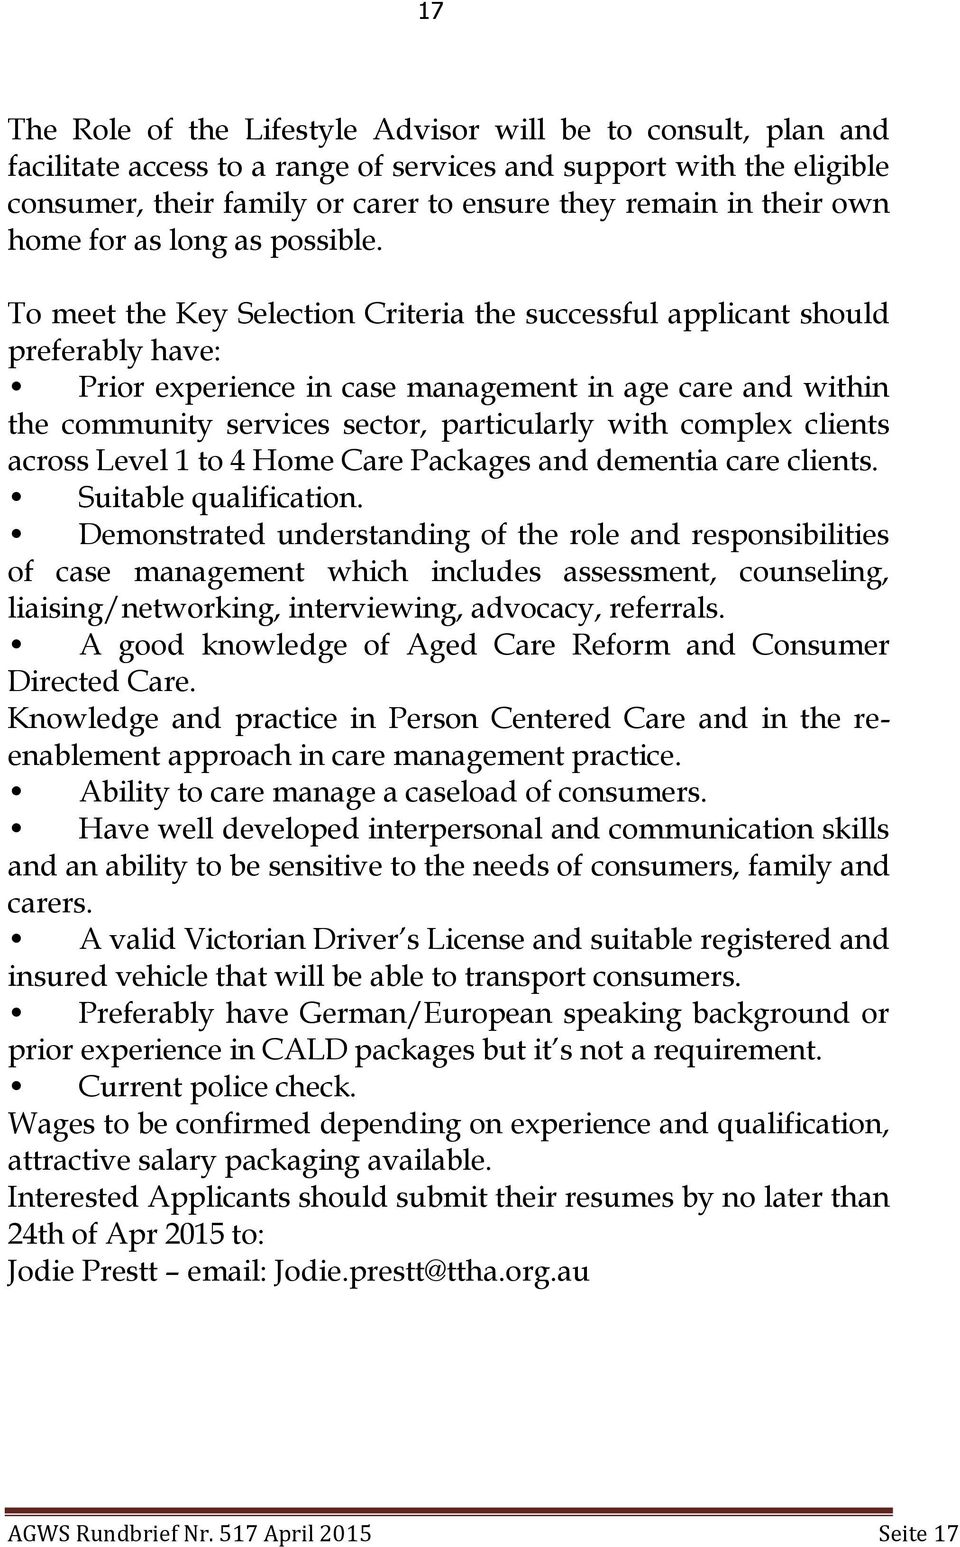 To meet the Key Selection Criteria the successful applicant should preferably have: Prior experience in case management in age care and within the community services sector, particularly with complex